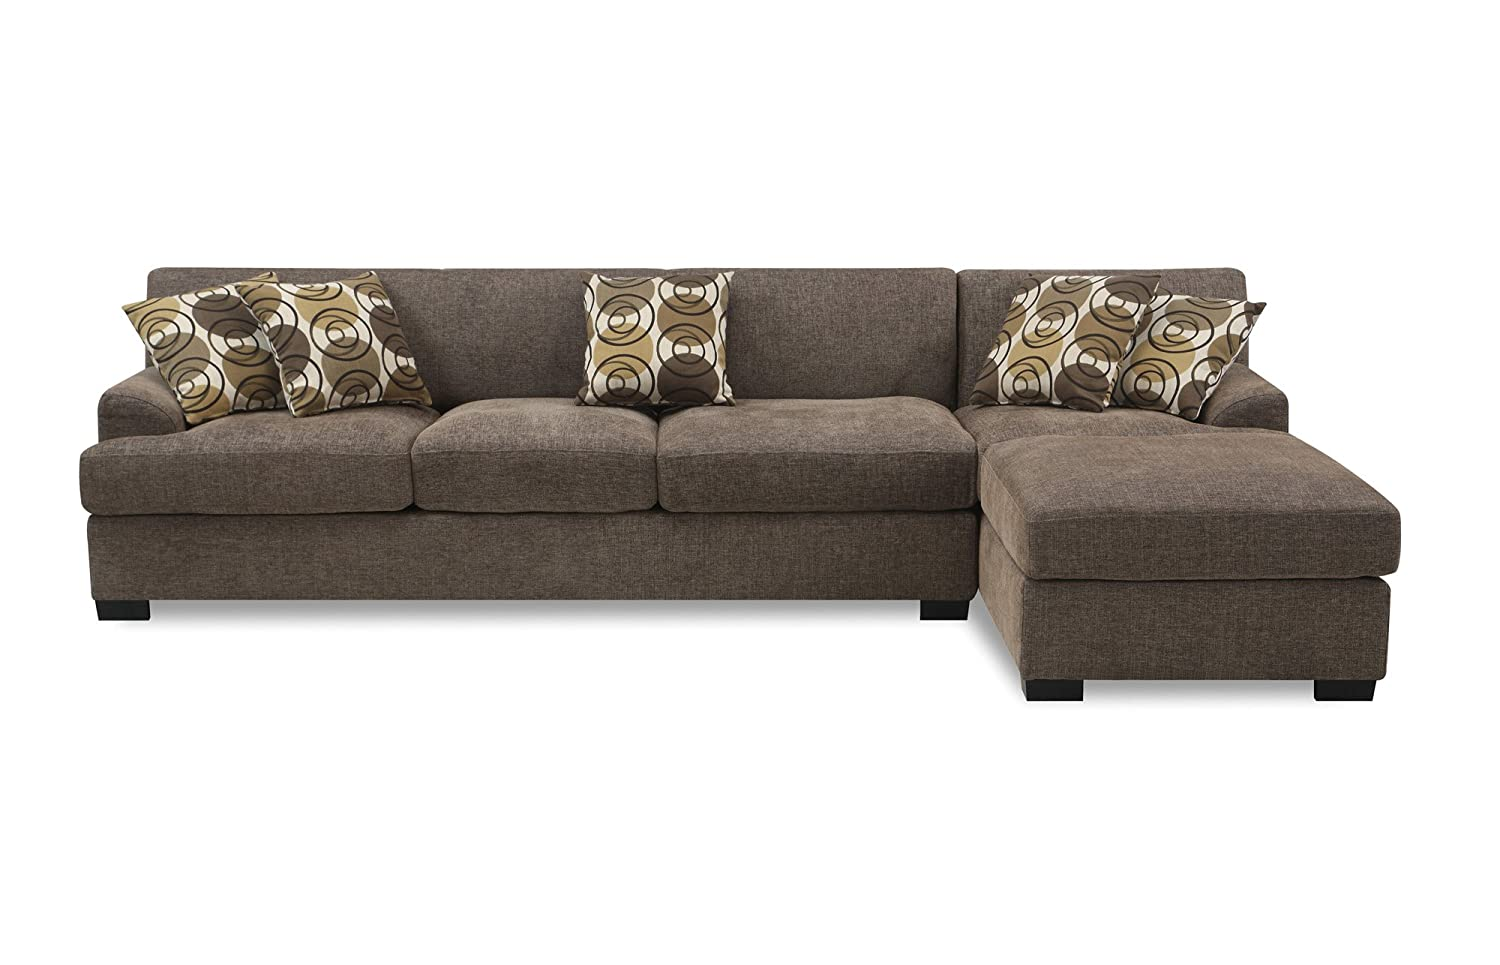 poundex bobkona arcadia sofa and loveseat set hot pink bed where to buy cheap furniture an exercise in frugality